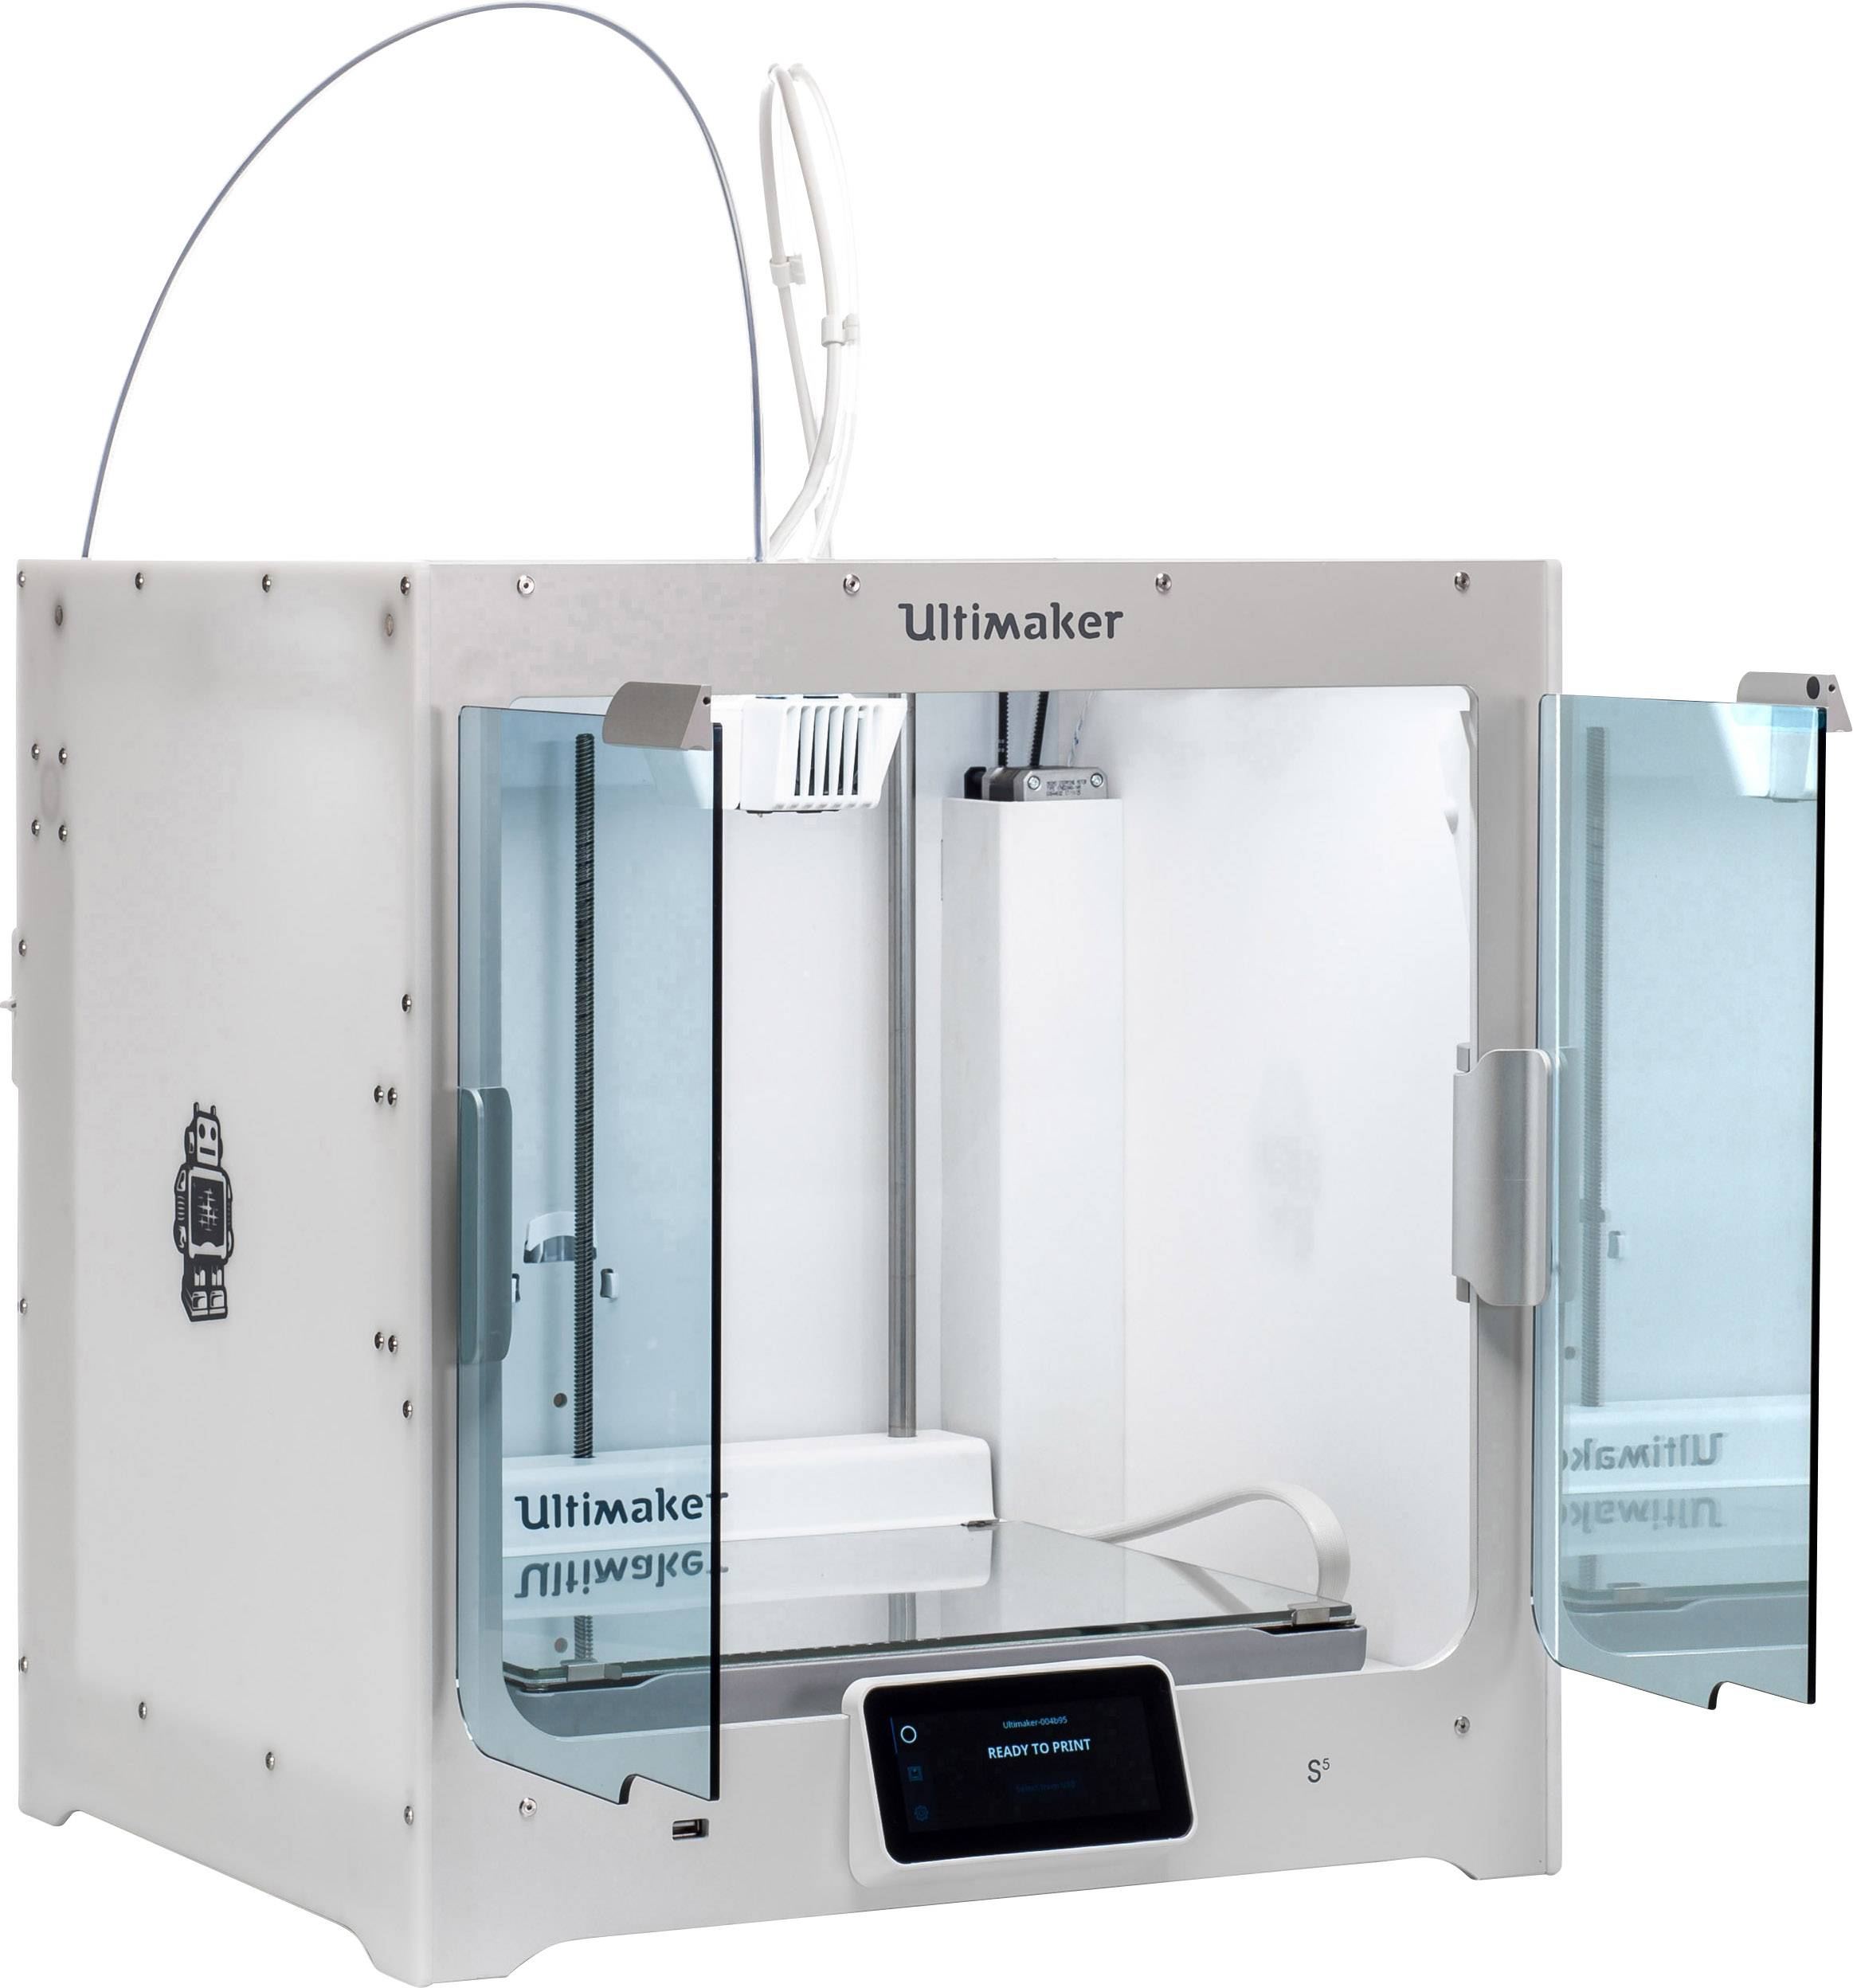 Drukarka Ultimaker 5S